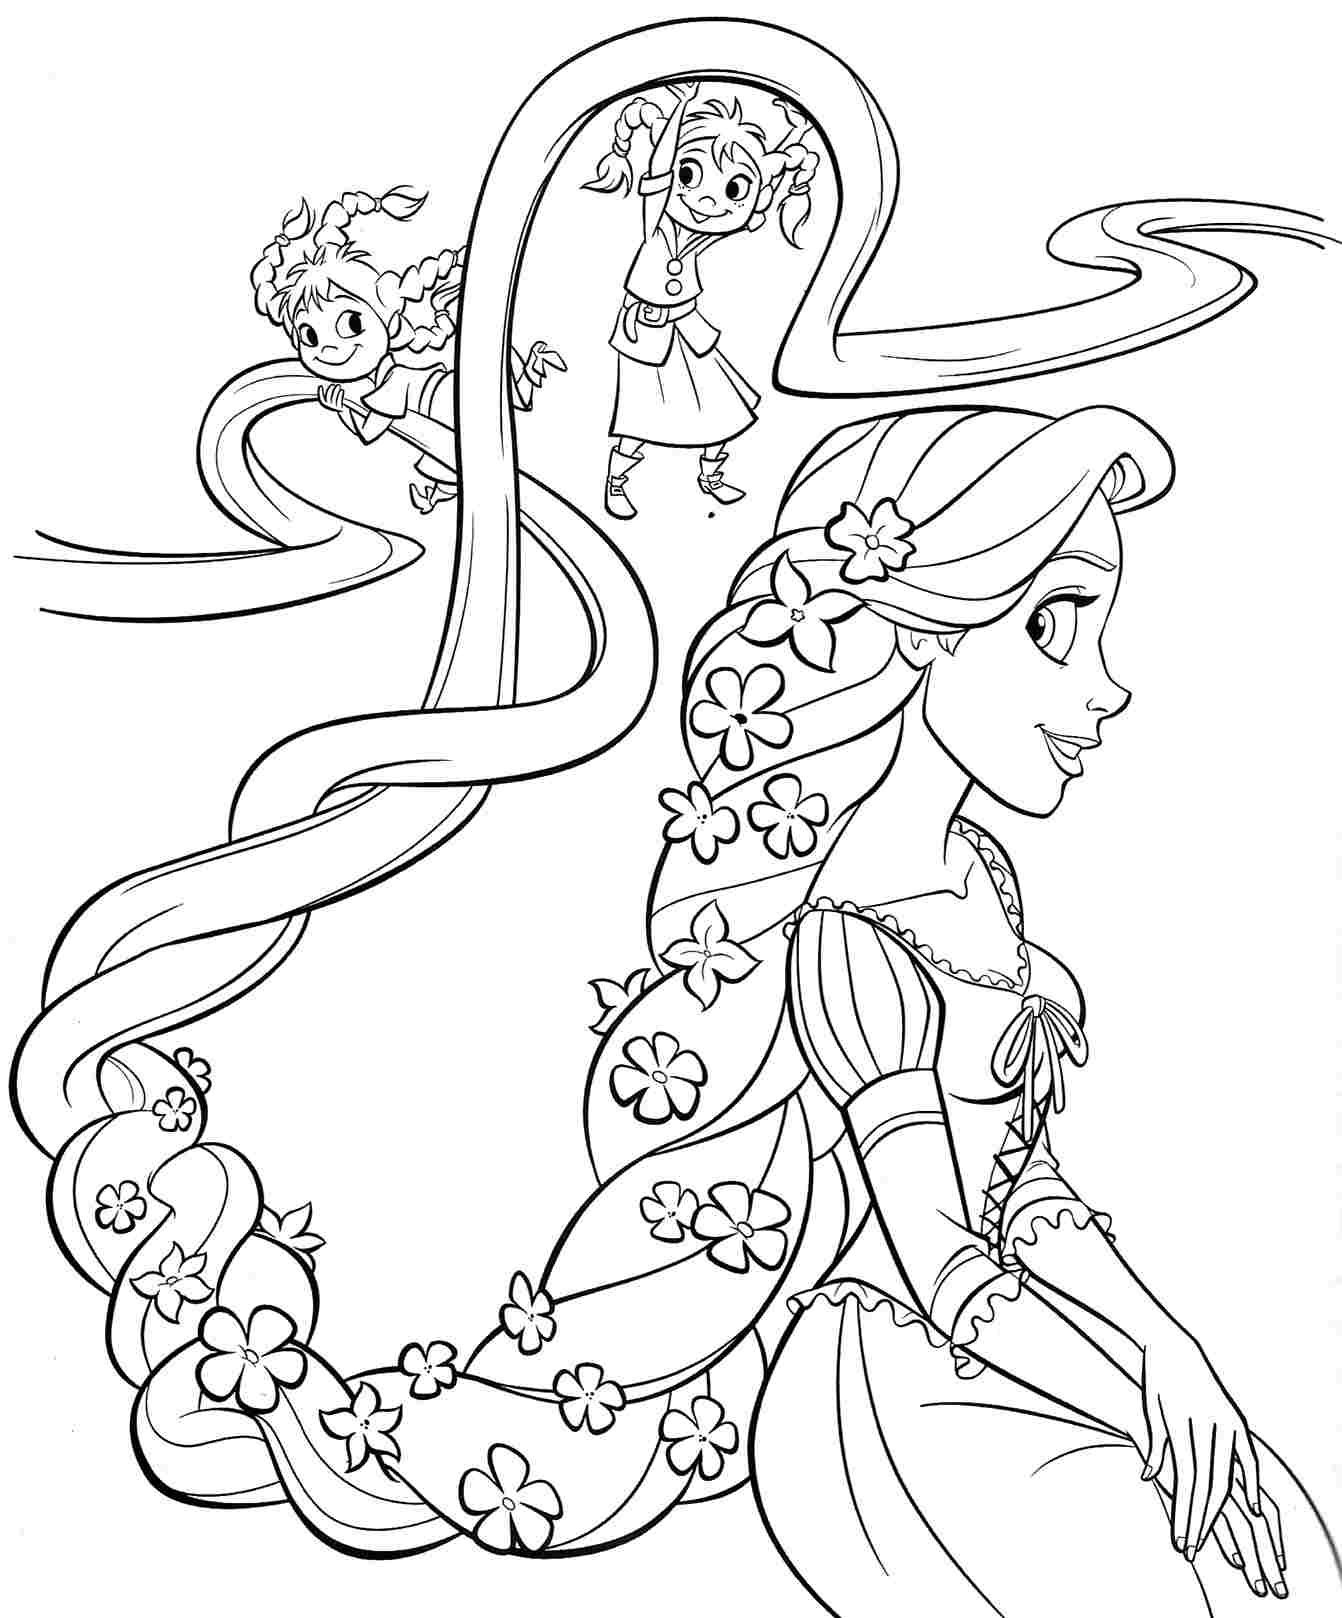 kids disney princess coloring pages - photo#43